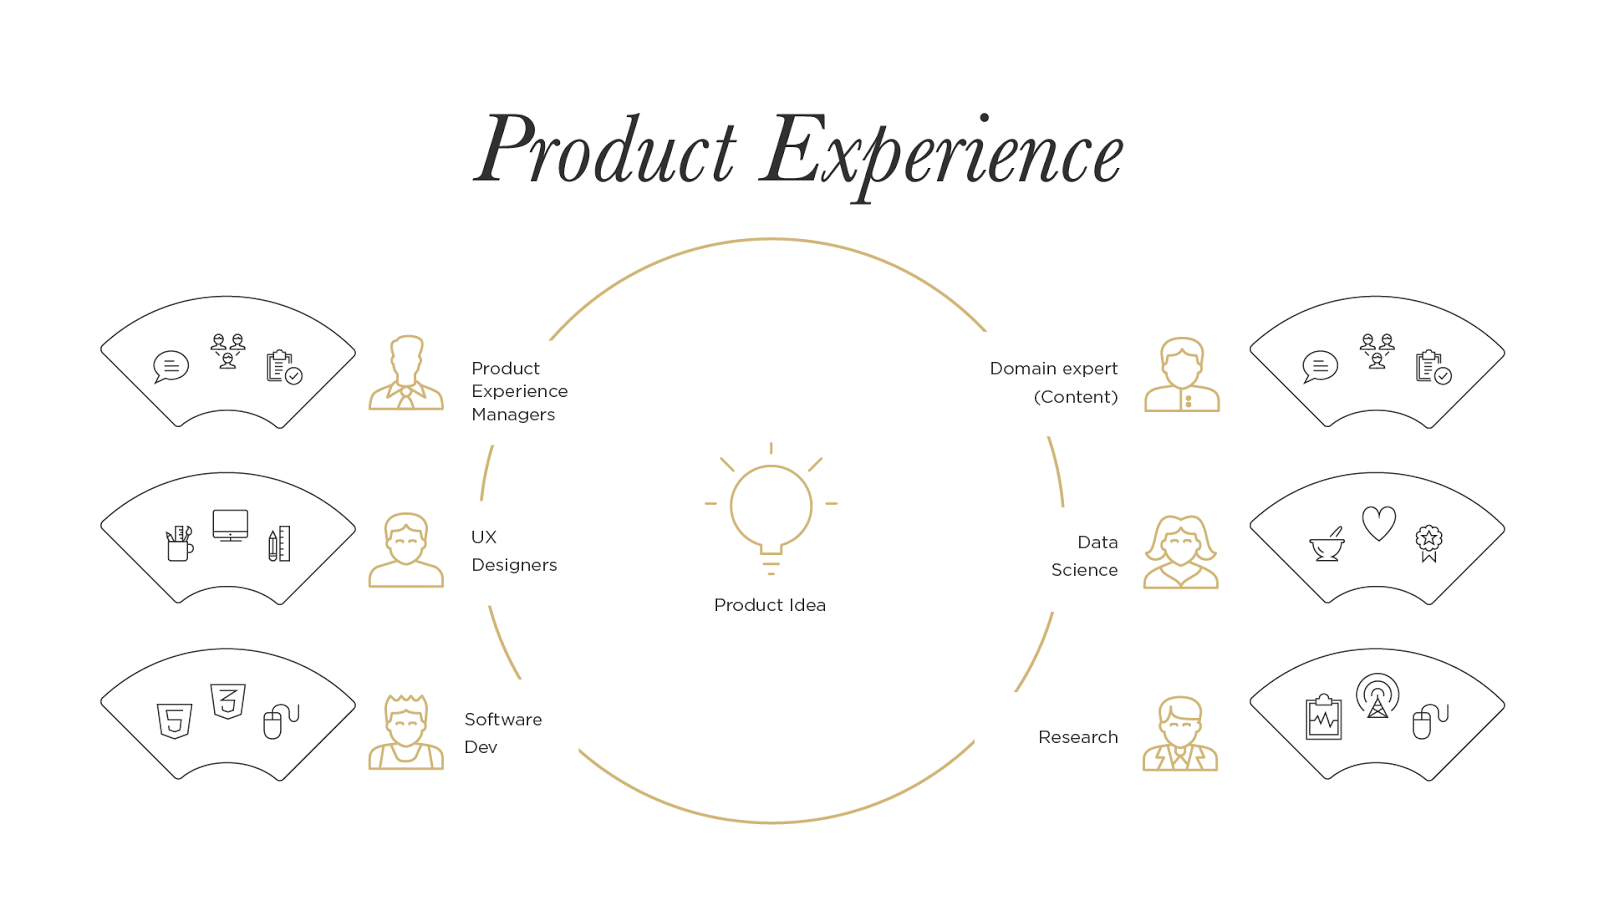 A diagram showing factors affecting product experience